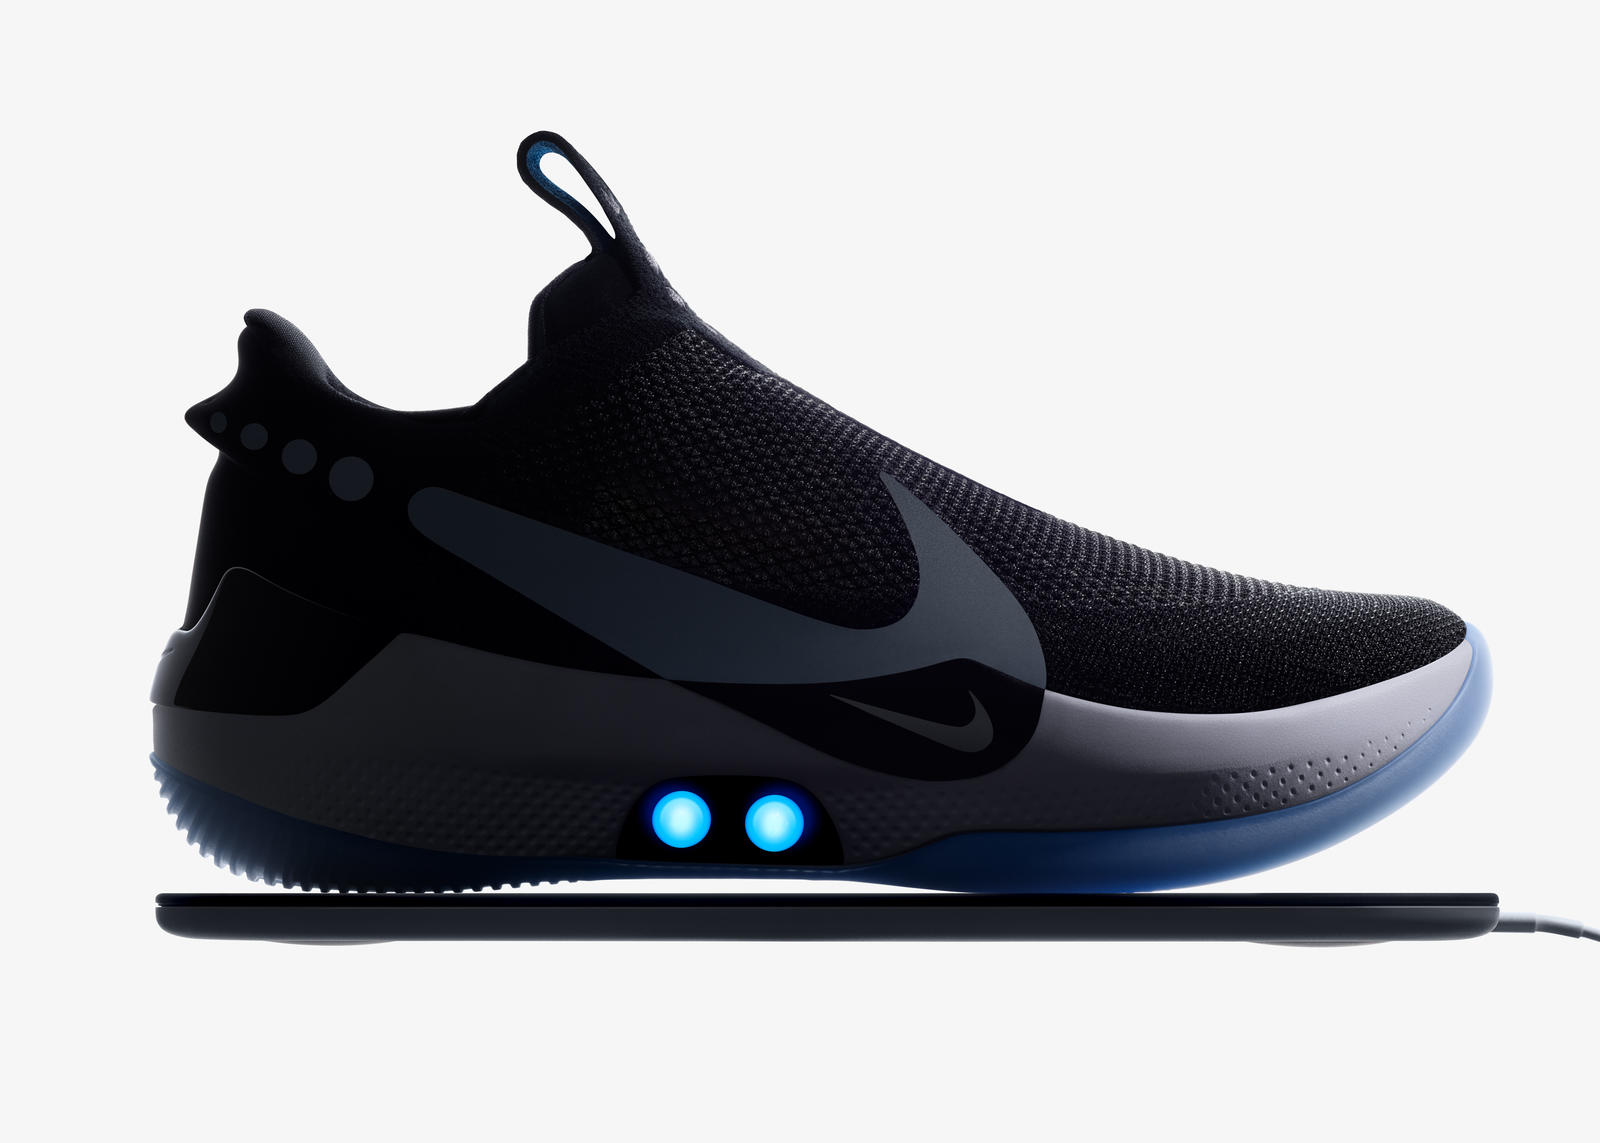 02ef92c71bd77 Introducing the Nike Adapt BB - Nike News